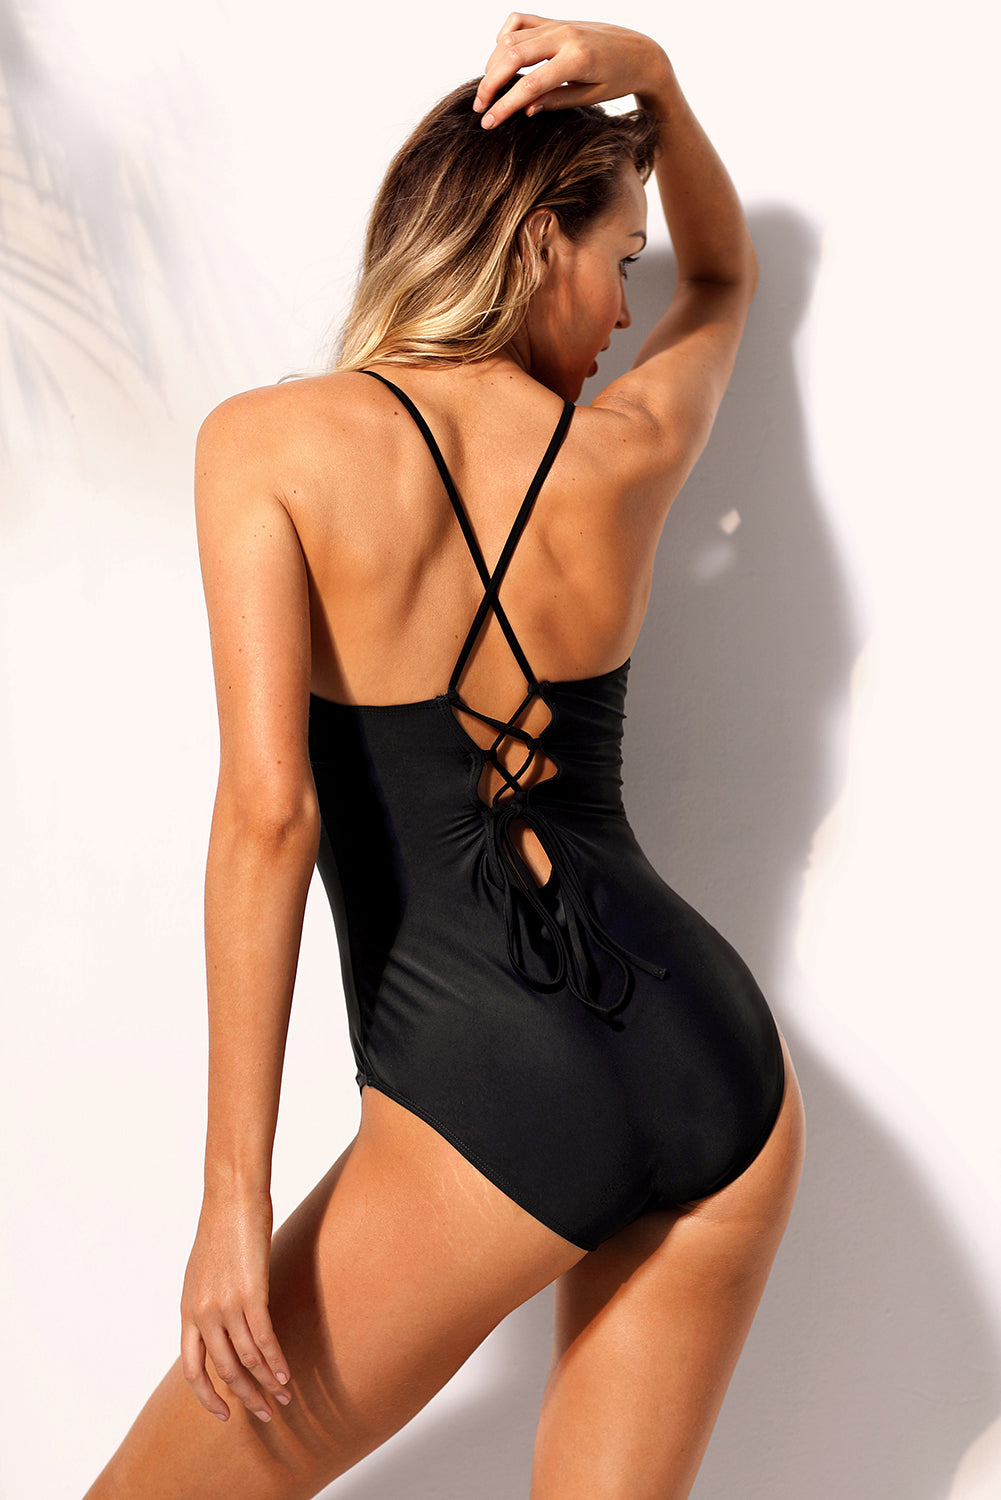 Black Strappy Crisscross Detail One Piece Swimsuit One-Piece Swimwear Discount Designer Fashion Clothes Shoes Bags Women Men Kids Children Black Owned Business